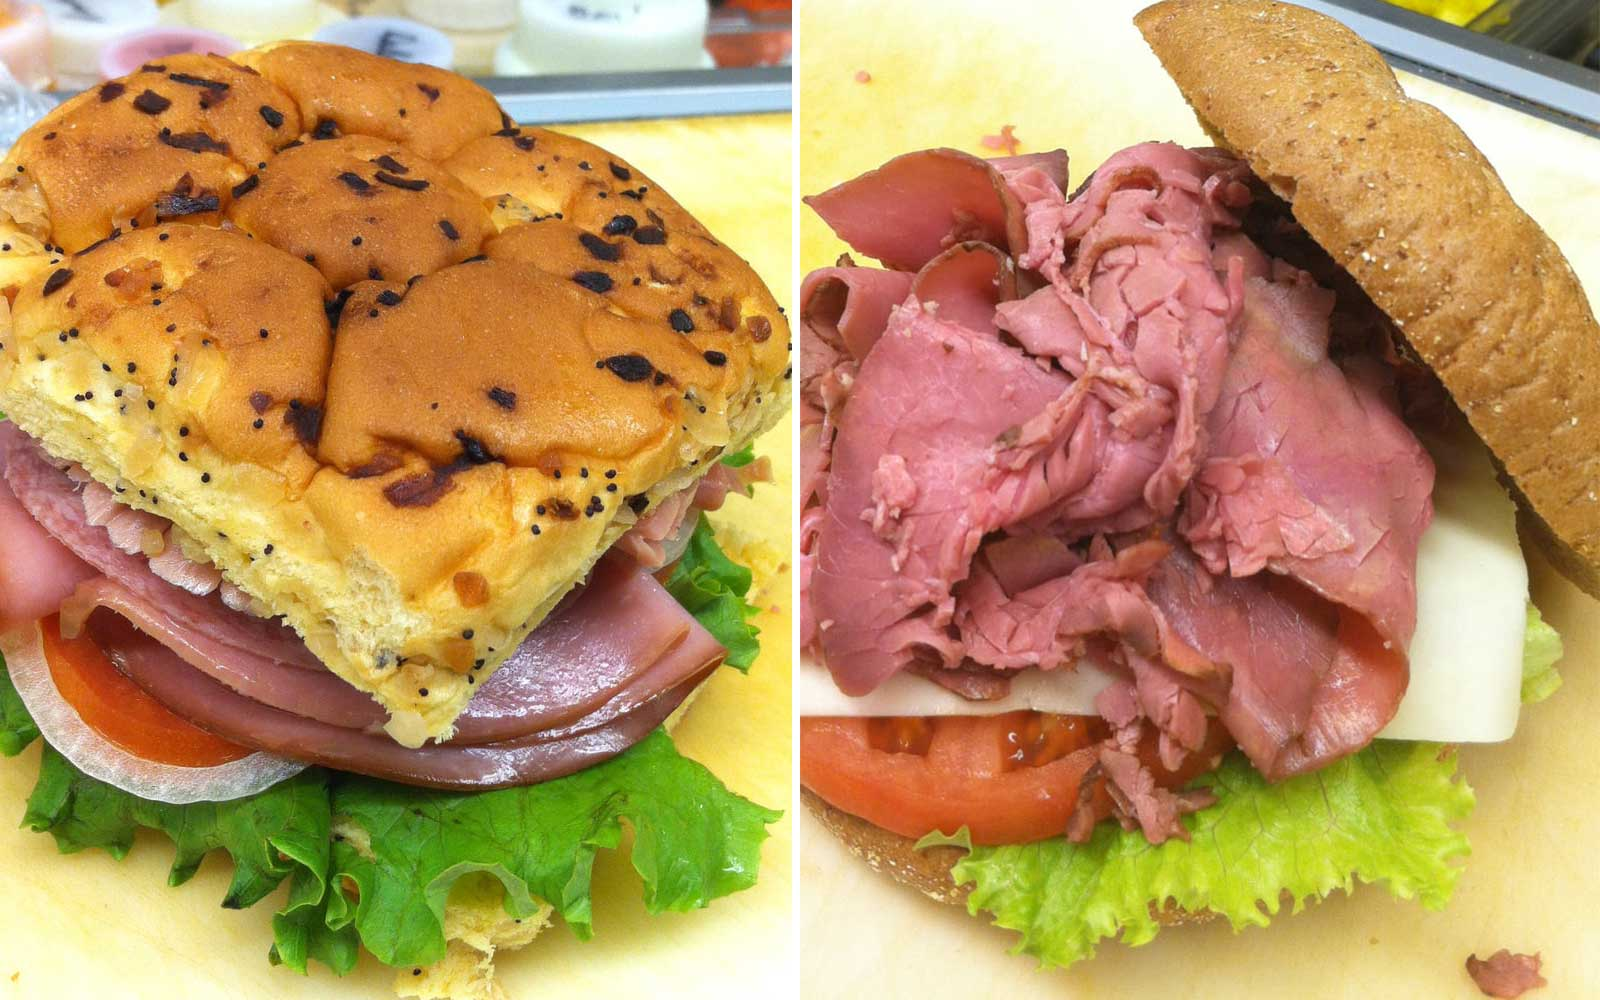 Roast Beef Sandwiches at Jon's Roast Beef in Laconia New Hampshire